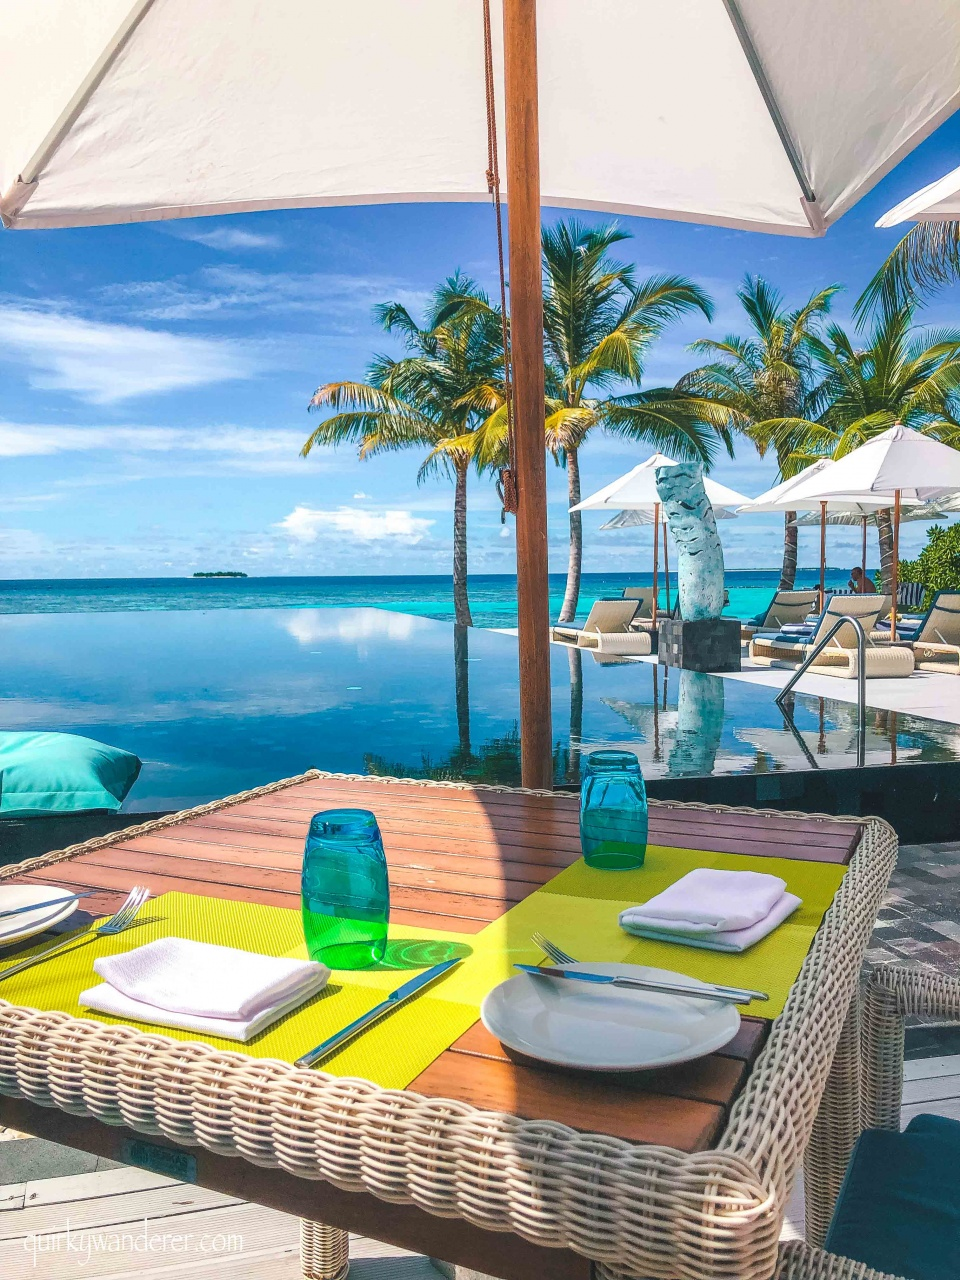 Restaurants in Movenpick Maldives